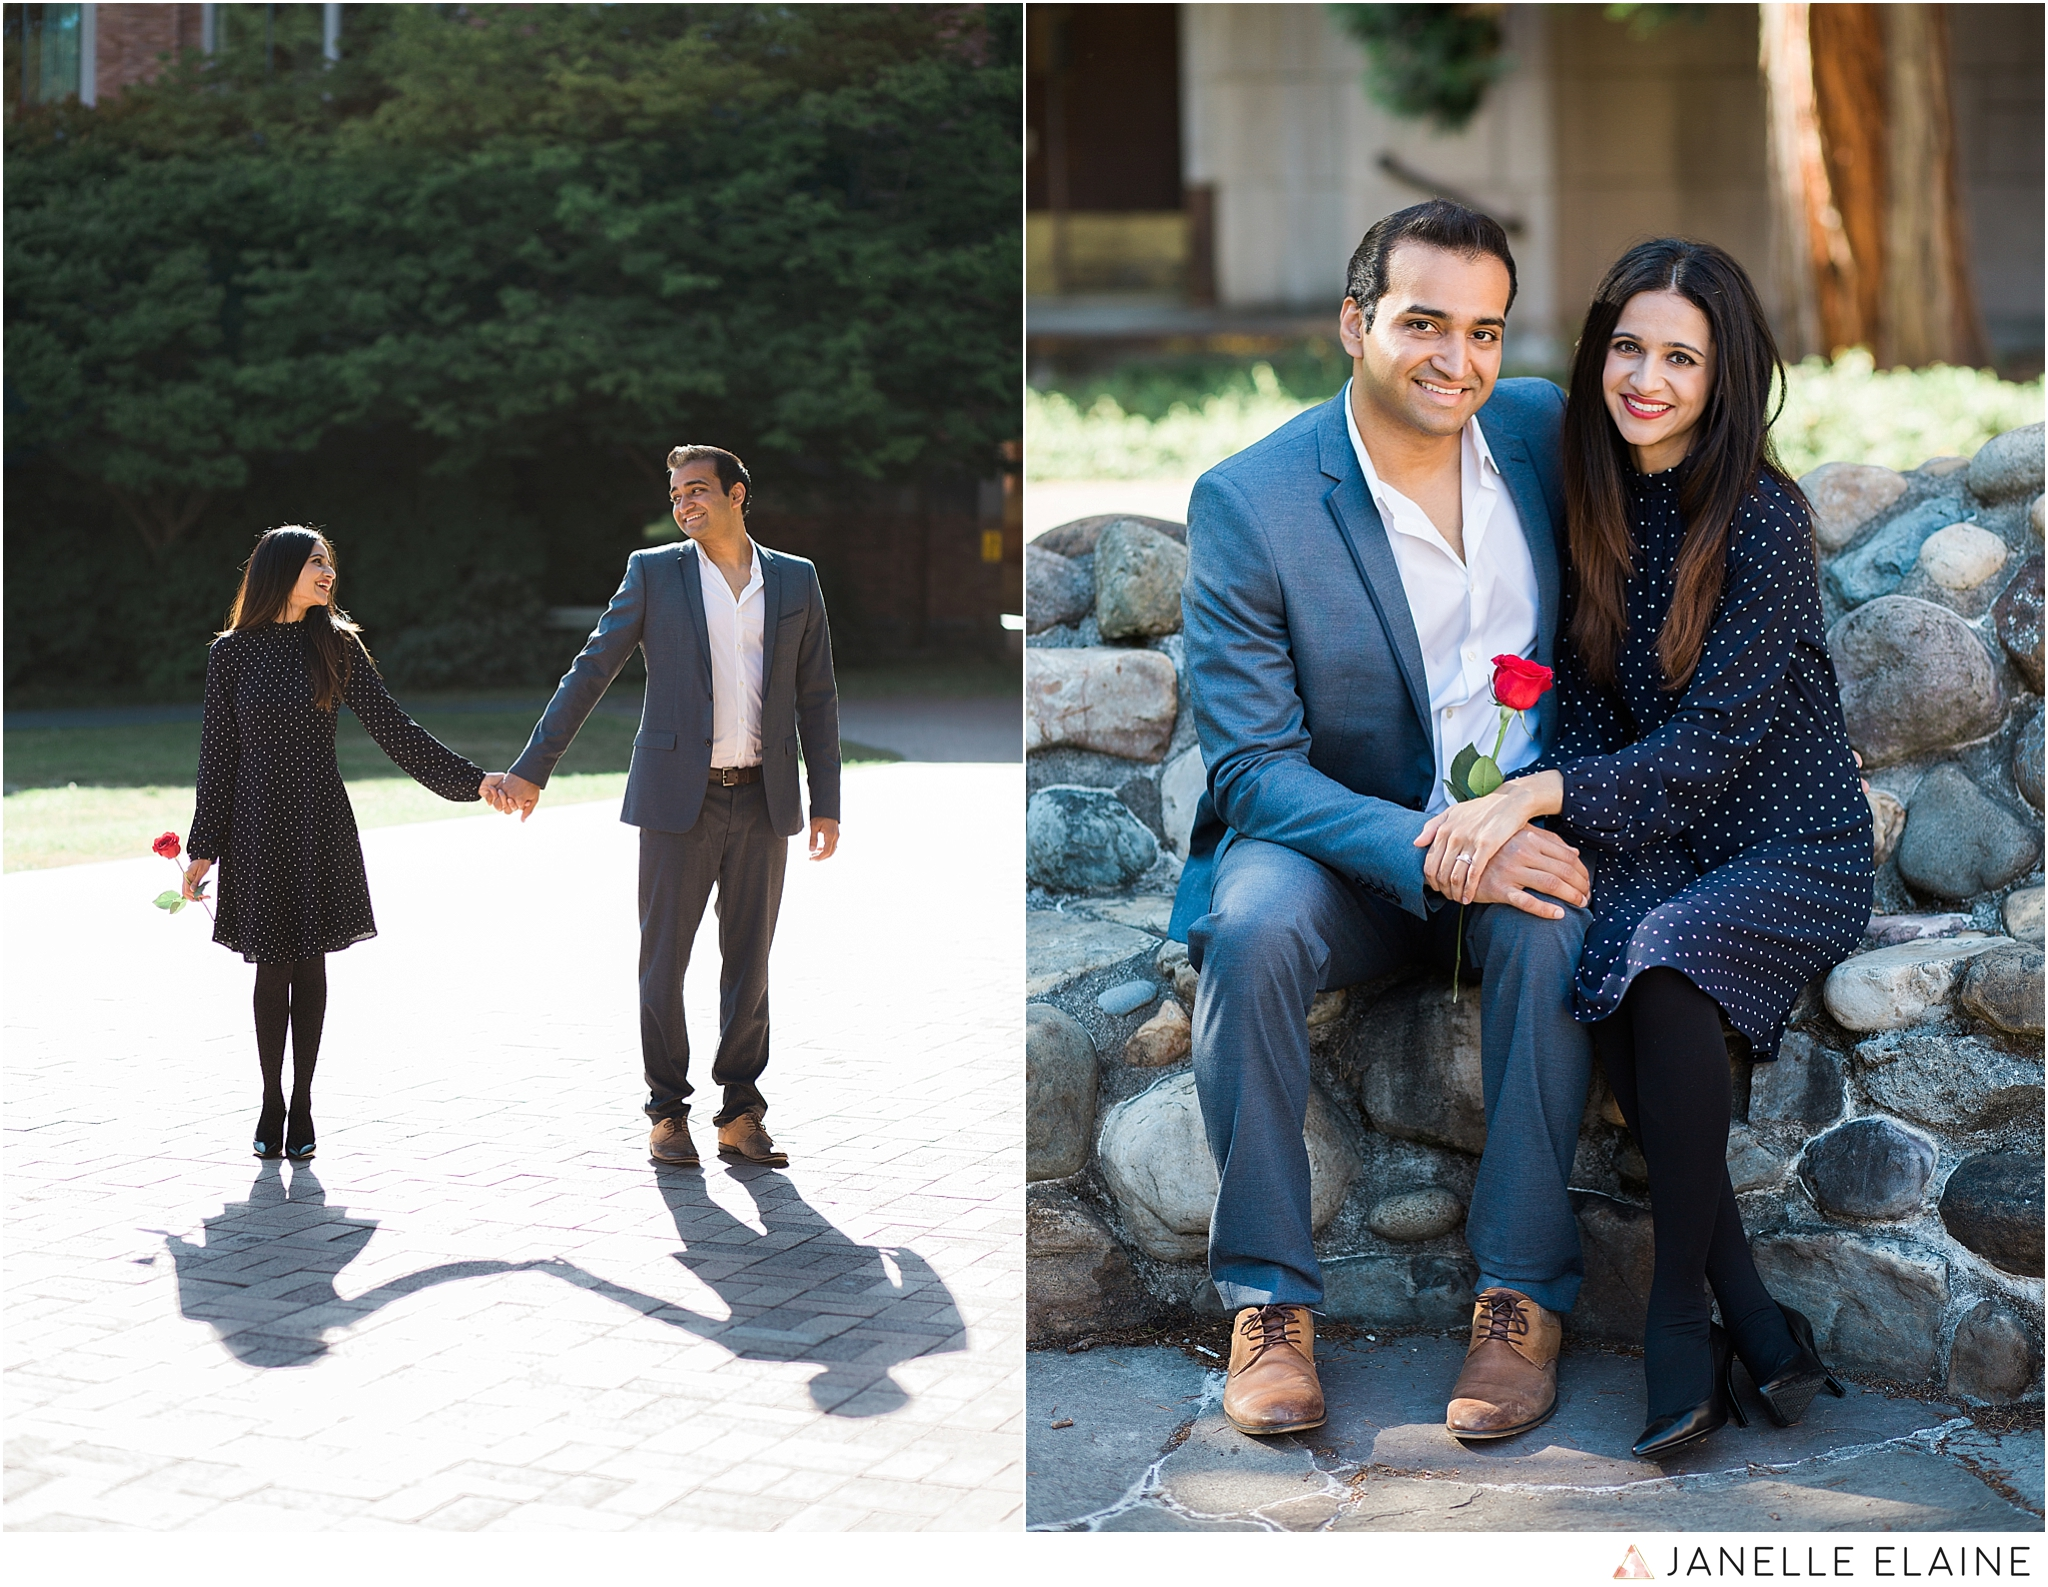 janelle elaine photography-zain and umema-seattle-uw-red square-engagement-photographer-92.jpg